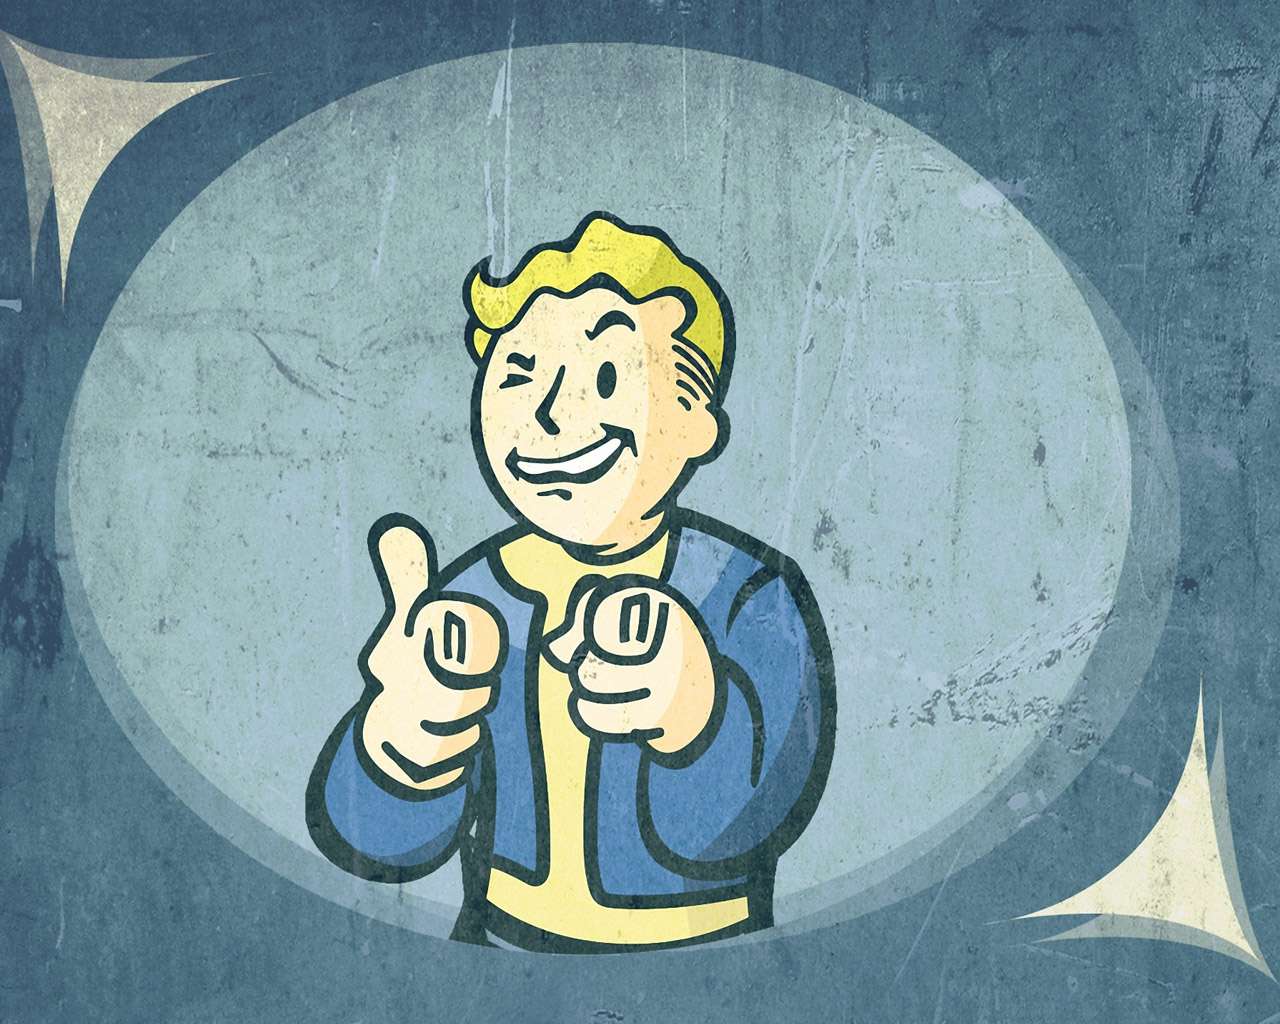 Free Fallout 3 Wallpaper in 1280x1024